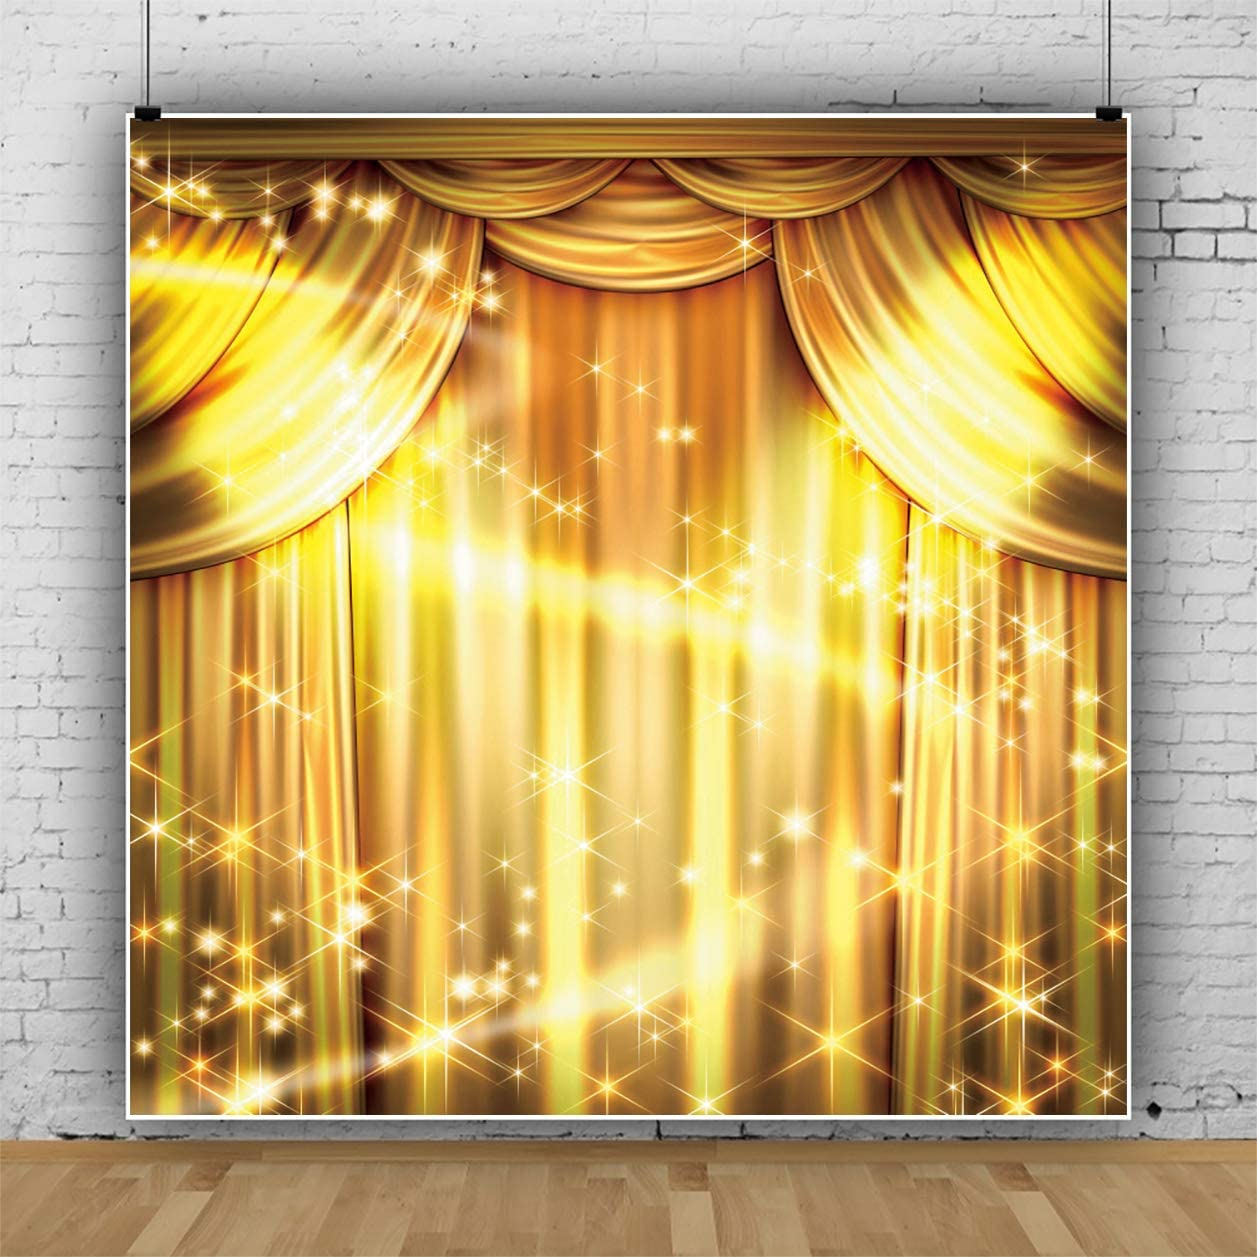 Leowefowa Luxurious Golden Stage Backdrop 10x10ft Vinyl Splendid Golden Curtain Drapes Dreamlike Light Spots Photography Background Video Show Photo Booth Props Event Activities Photoshoot